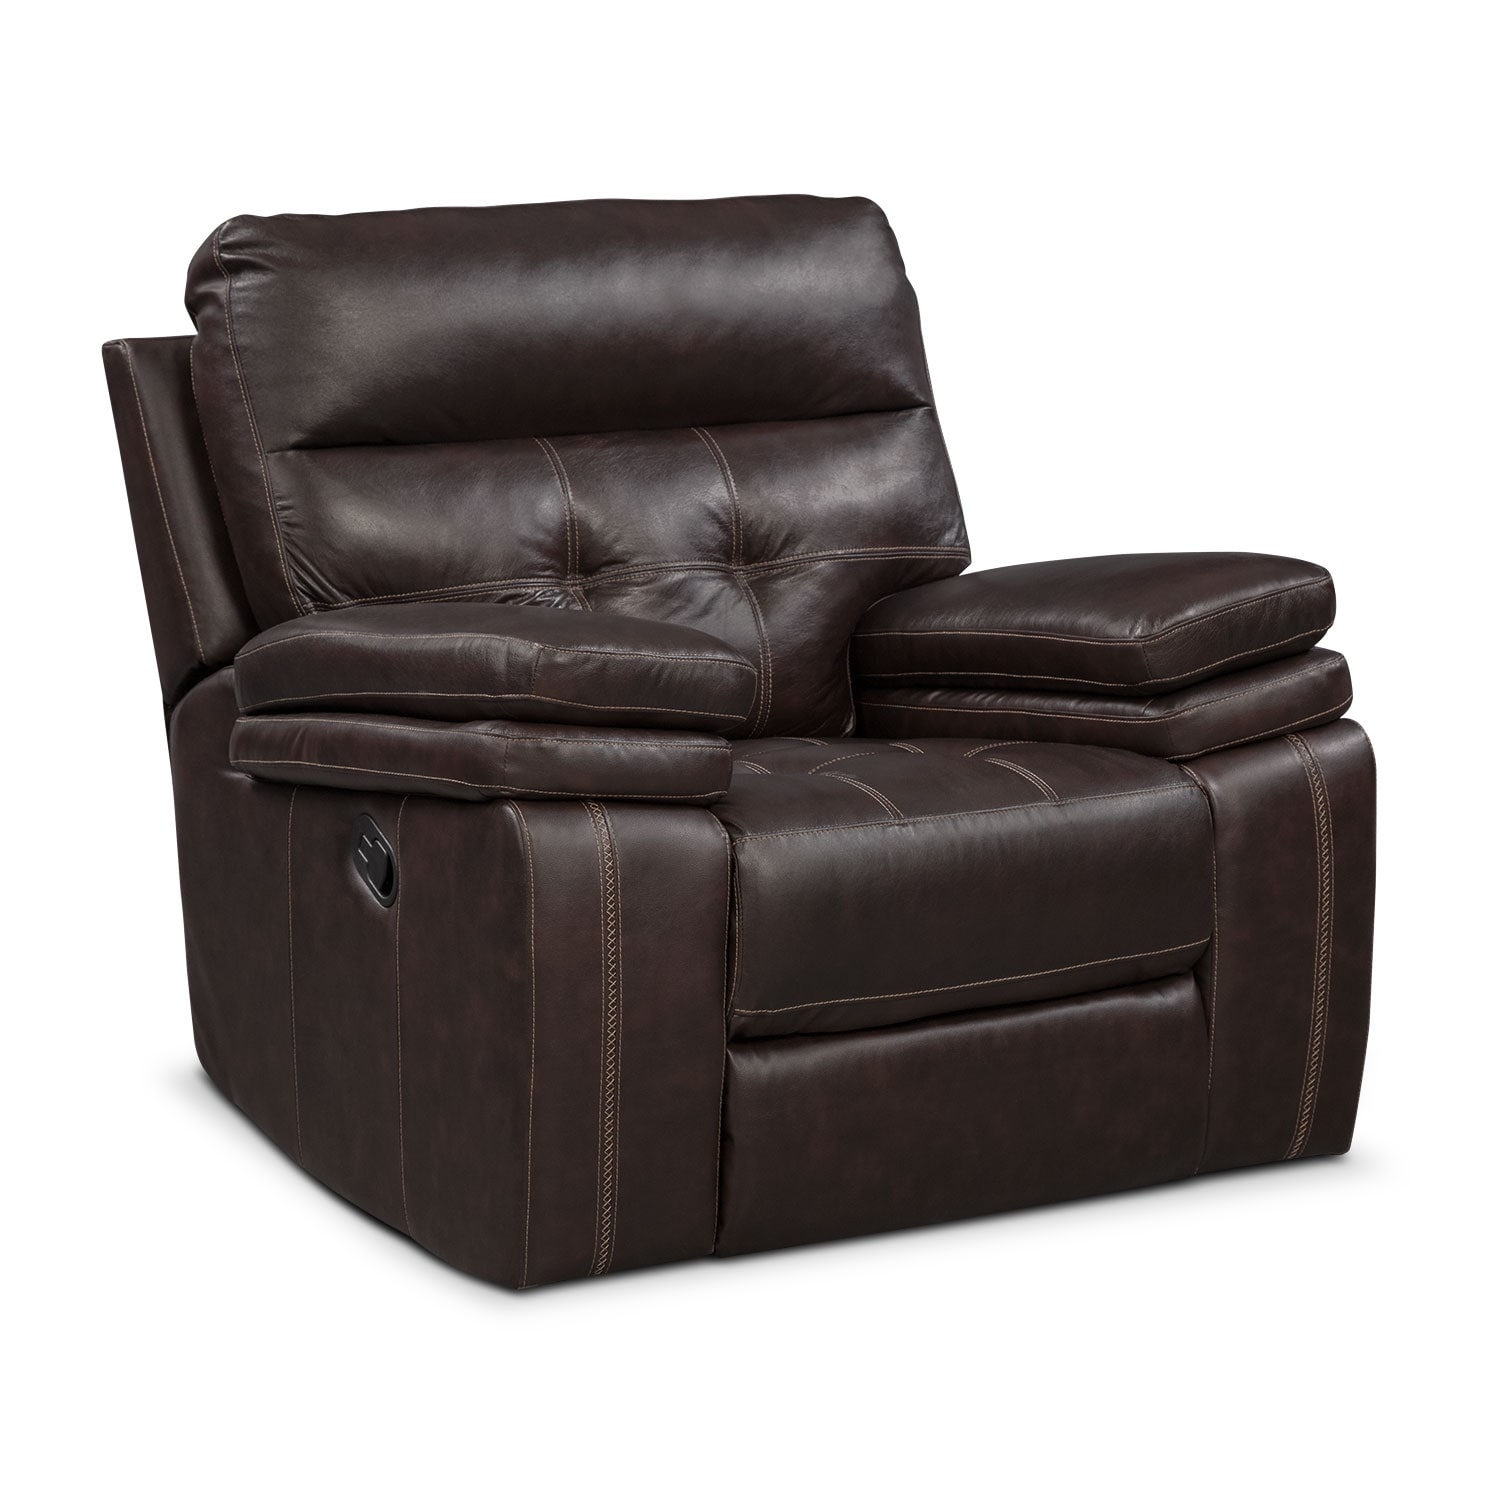 Brisco Manual Recliner   Brown